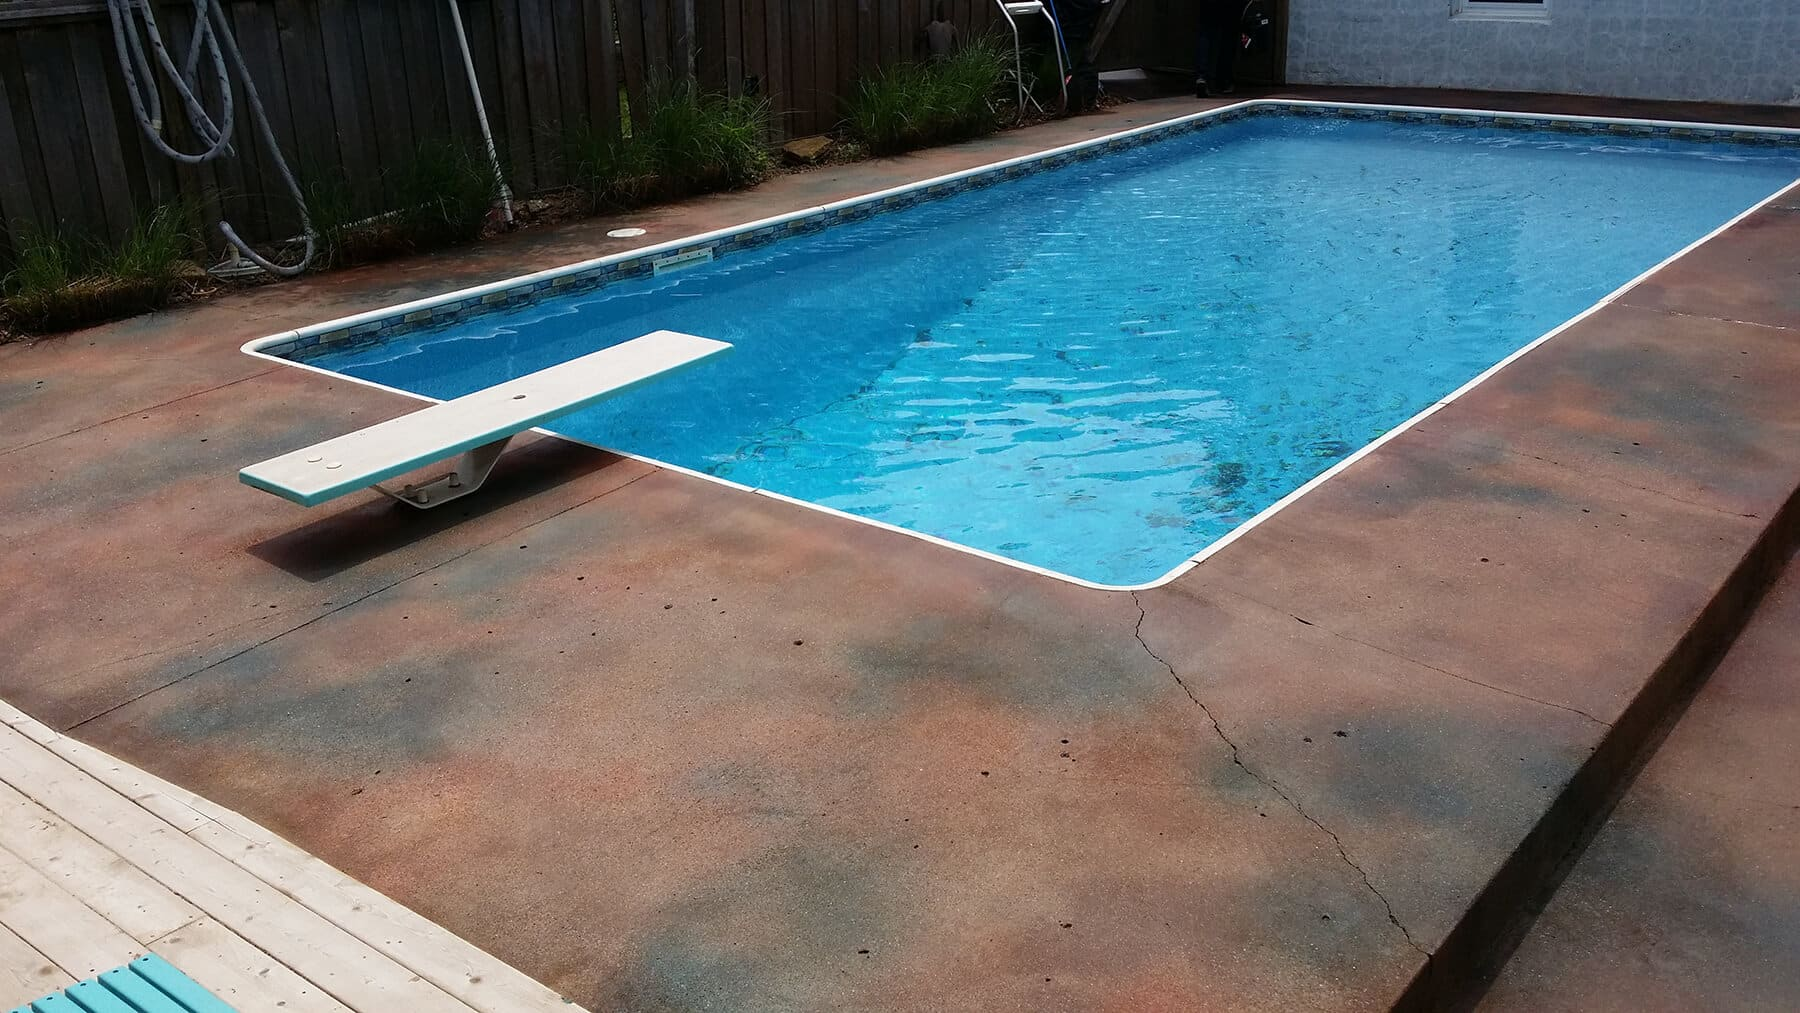 Pool deck of concrete in Kansas City, with diving board